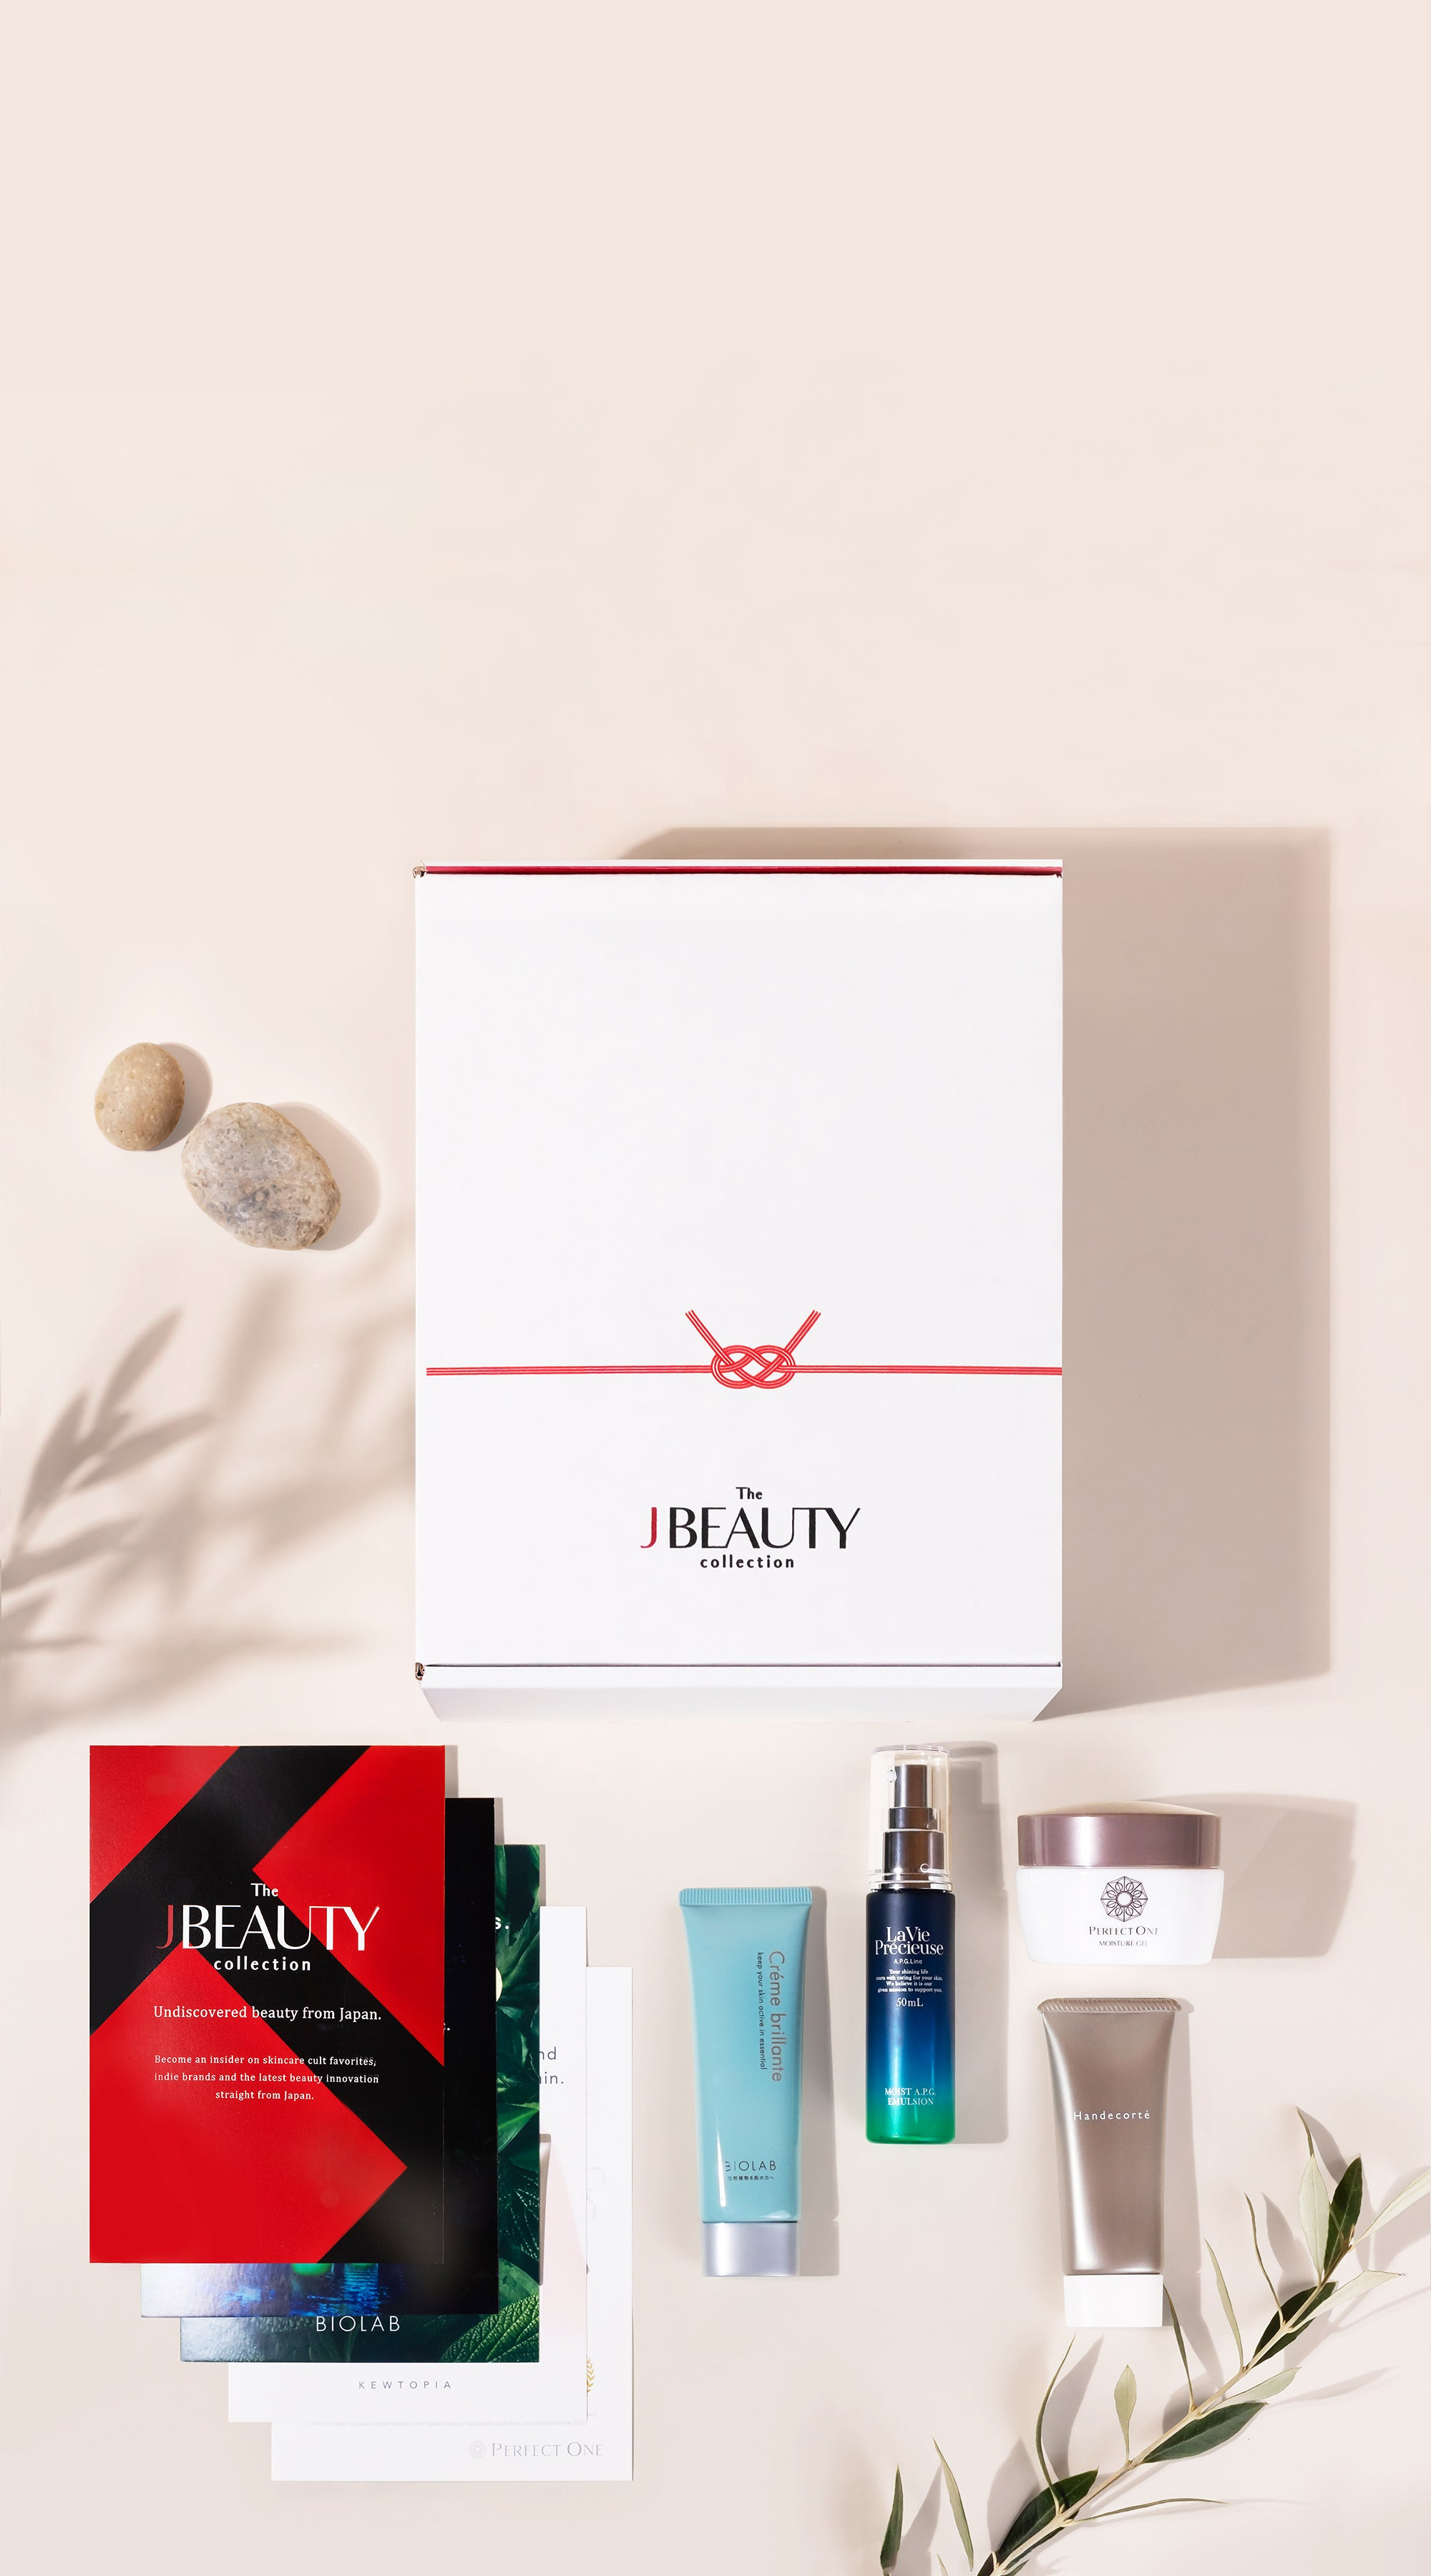 The JBeauty Collection